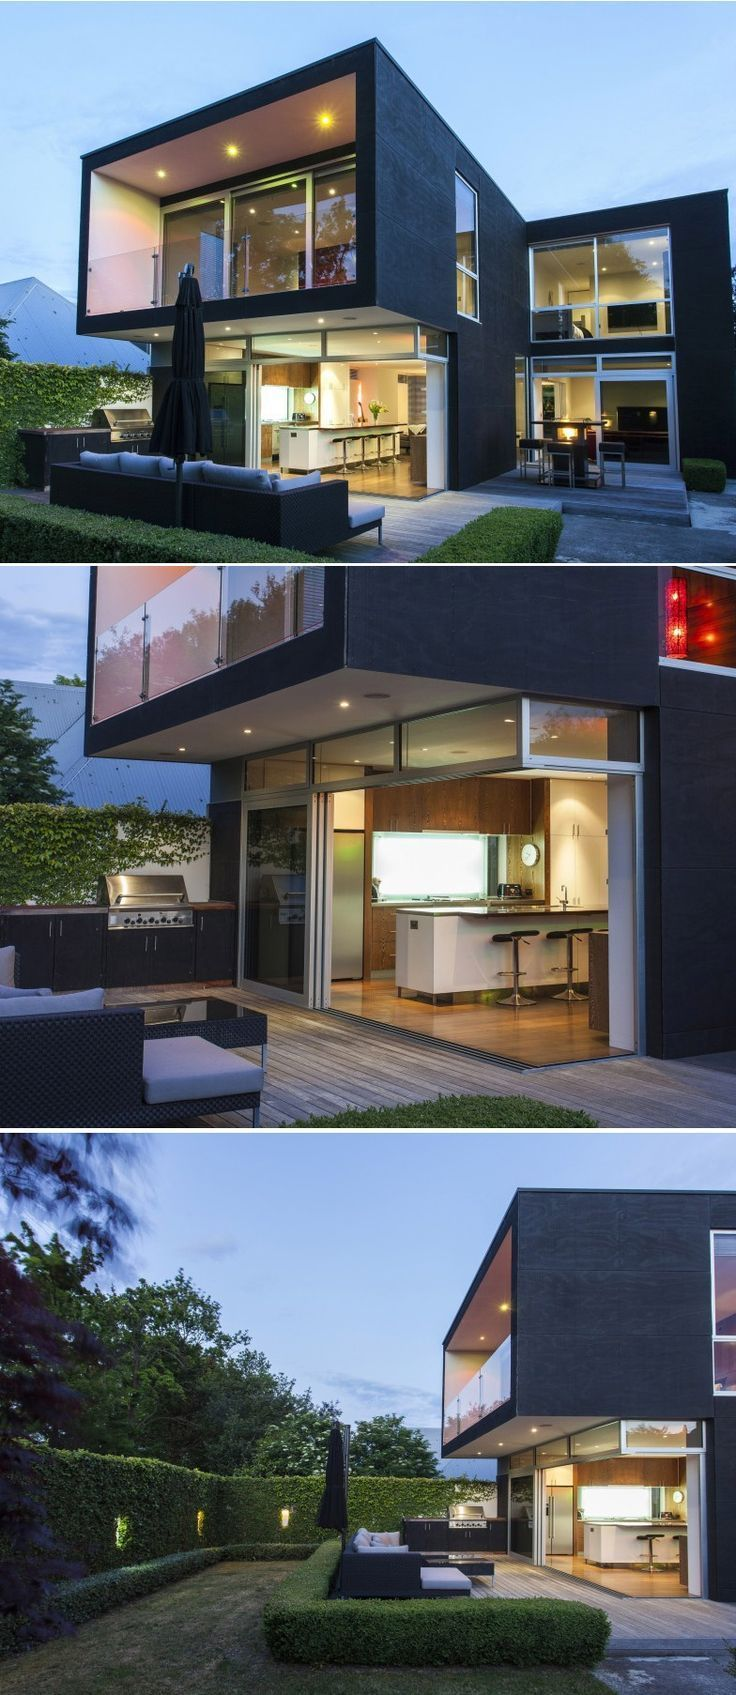 Home Design Photos the 25+ best modern house design ideas on pinterest